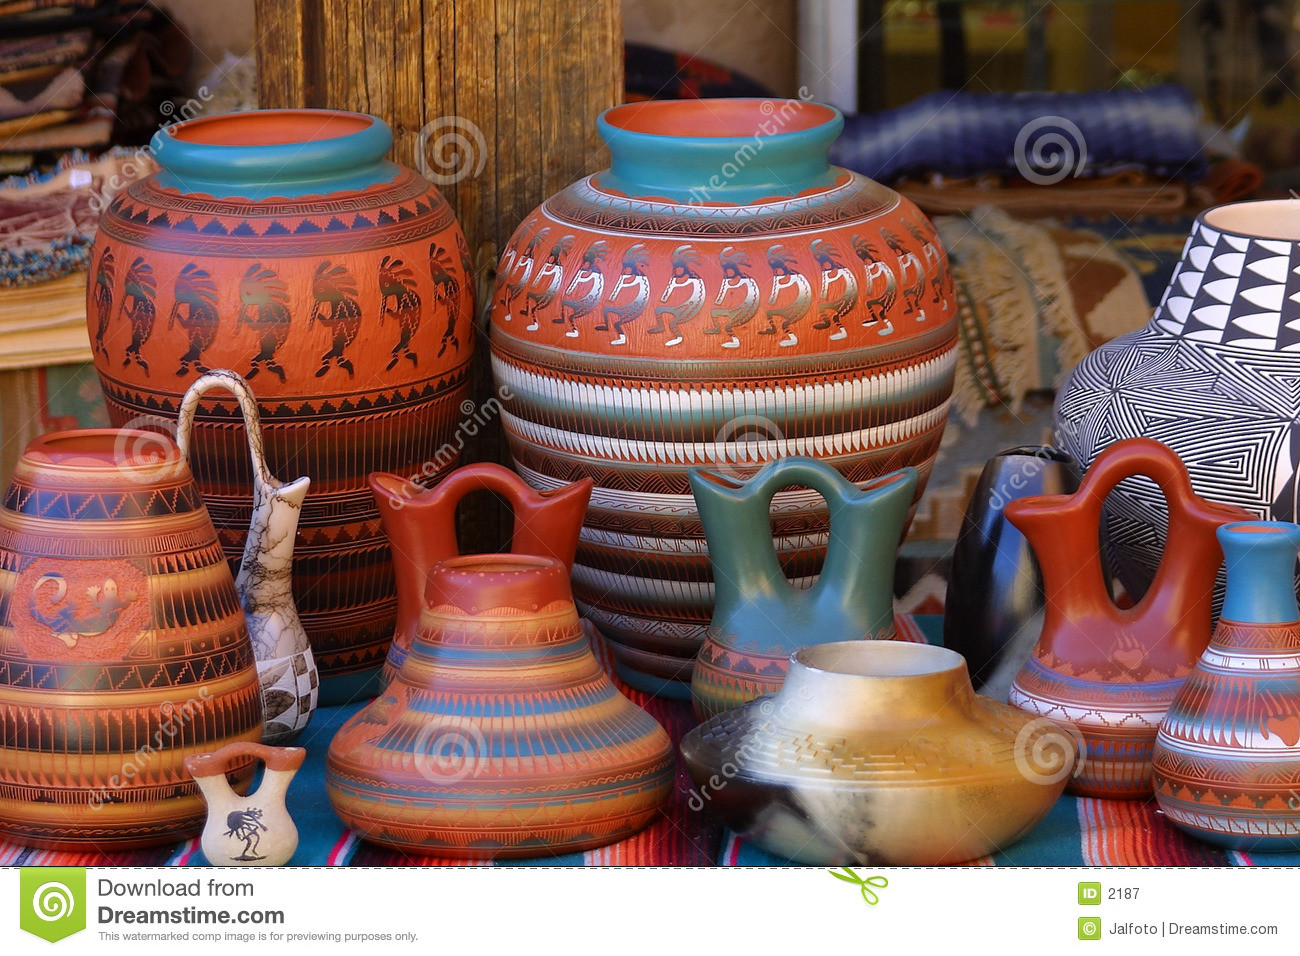 10 Elegant Red Clay Pottery Vases 2021 free download red clay pottery vases of new mexico pottery stock image image of traditional mexican 2187 with regard to new mexico pottery